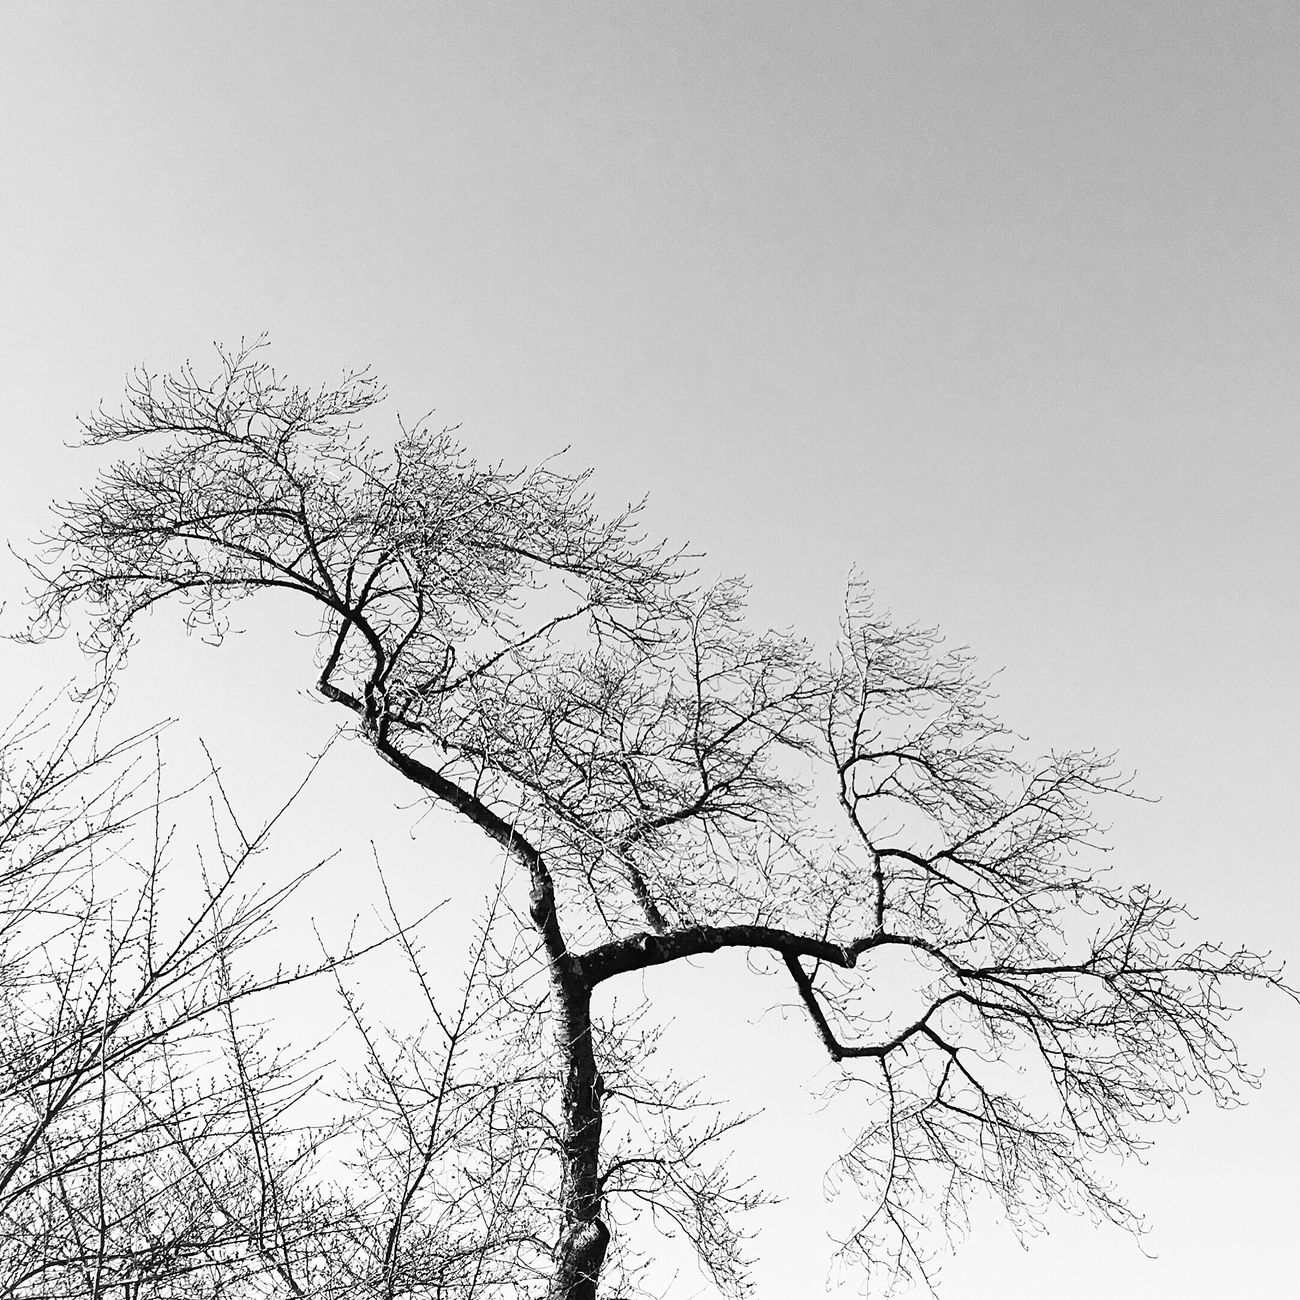 Tree Beauty In Nature From My Point Of View Streetphotography EyeEm Best Shots - Black + White Blackandwhite Bnw Monochrome